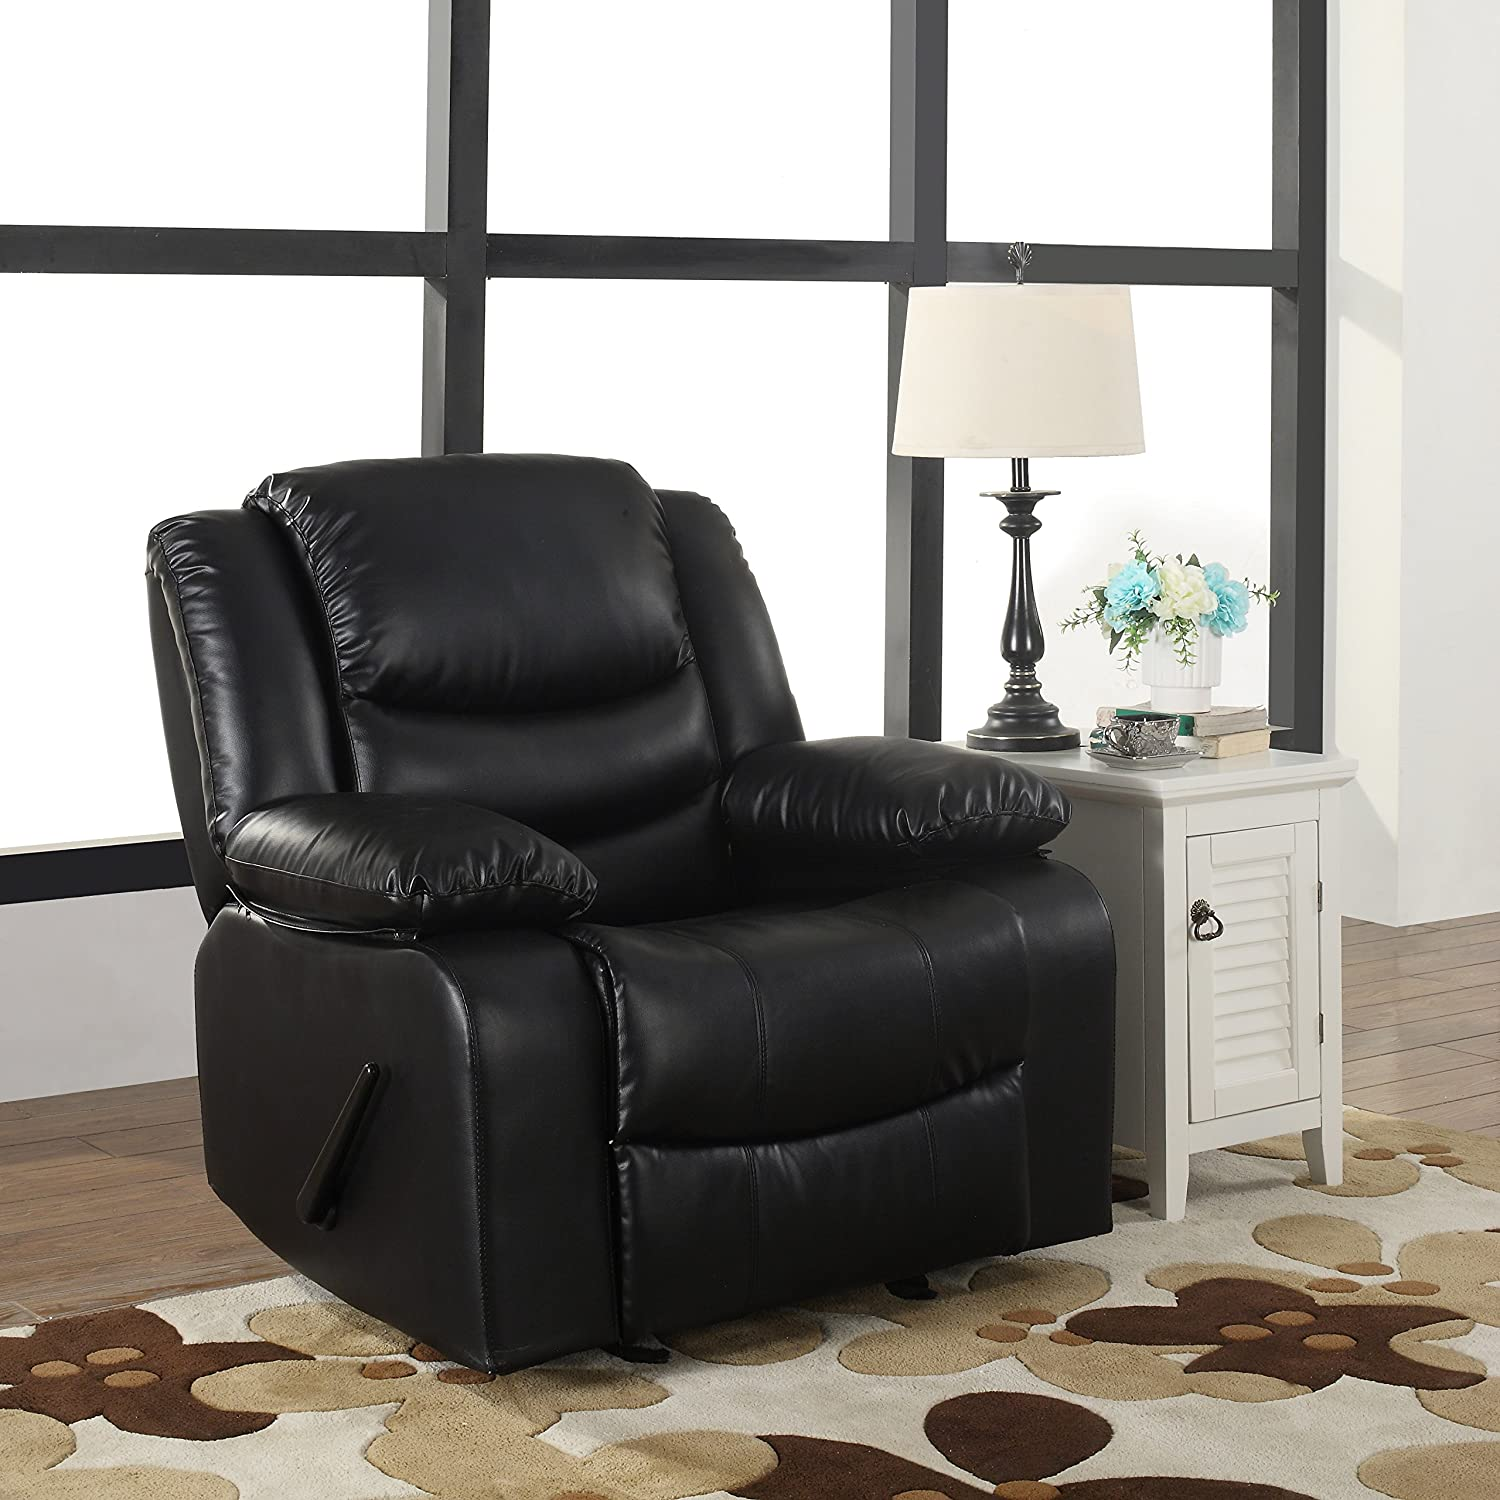 Amazon com  Bonded Leather Rocker Recliner Living Room Chair  Black   Brown   Black   Kitchen   Dining. Amazon com  Bonded Leather Rocker Recliner Living Room Chair